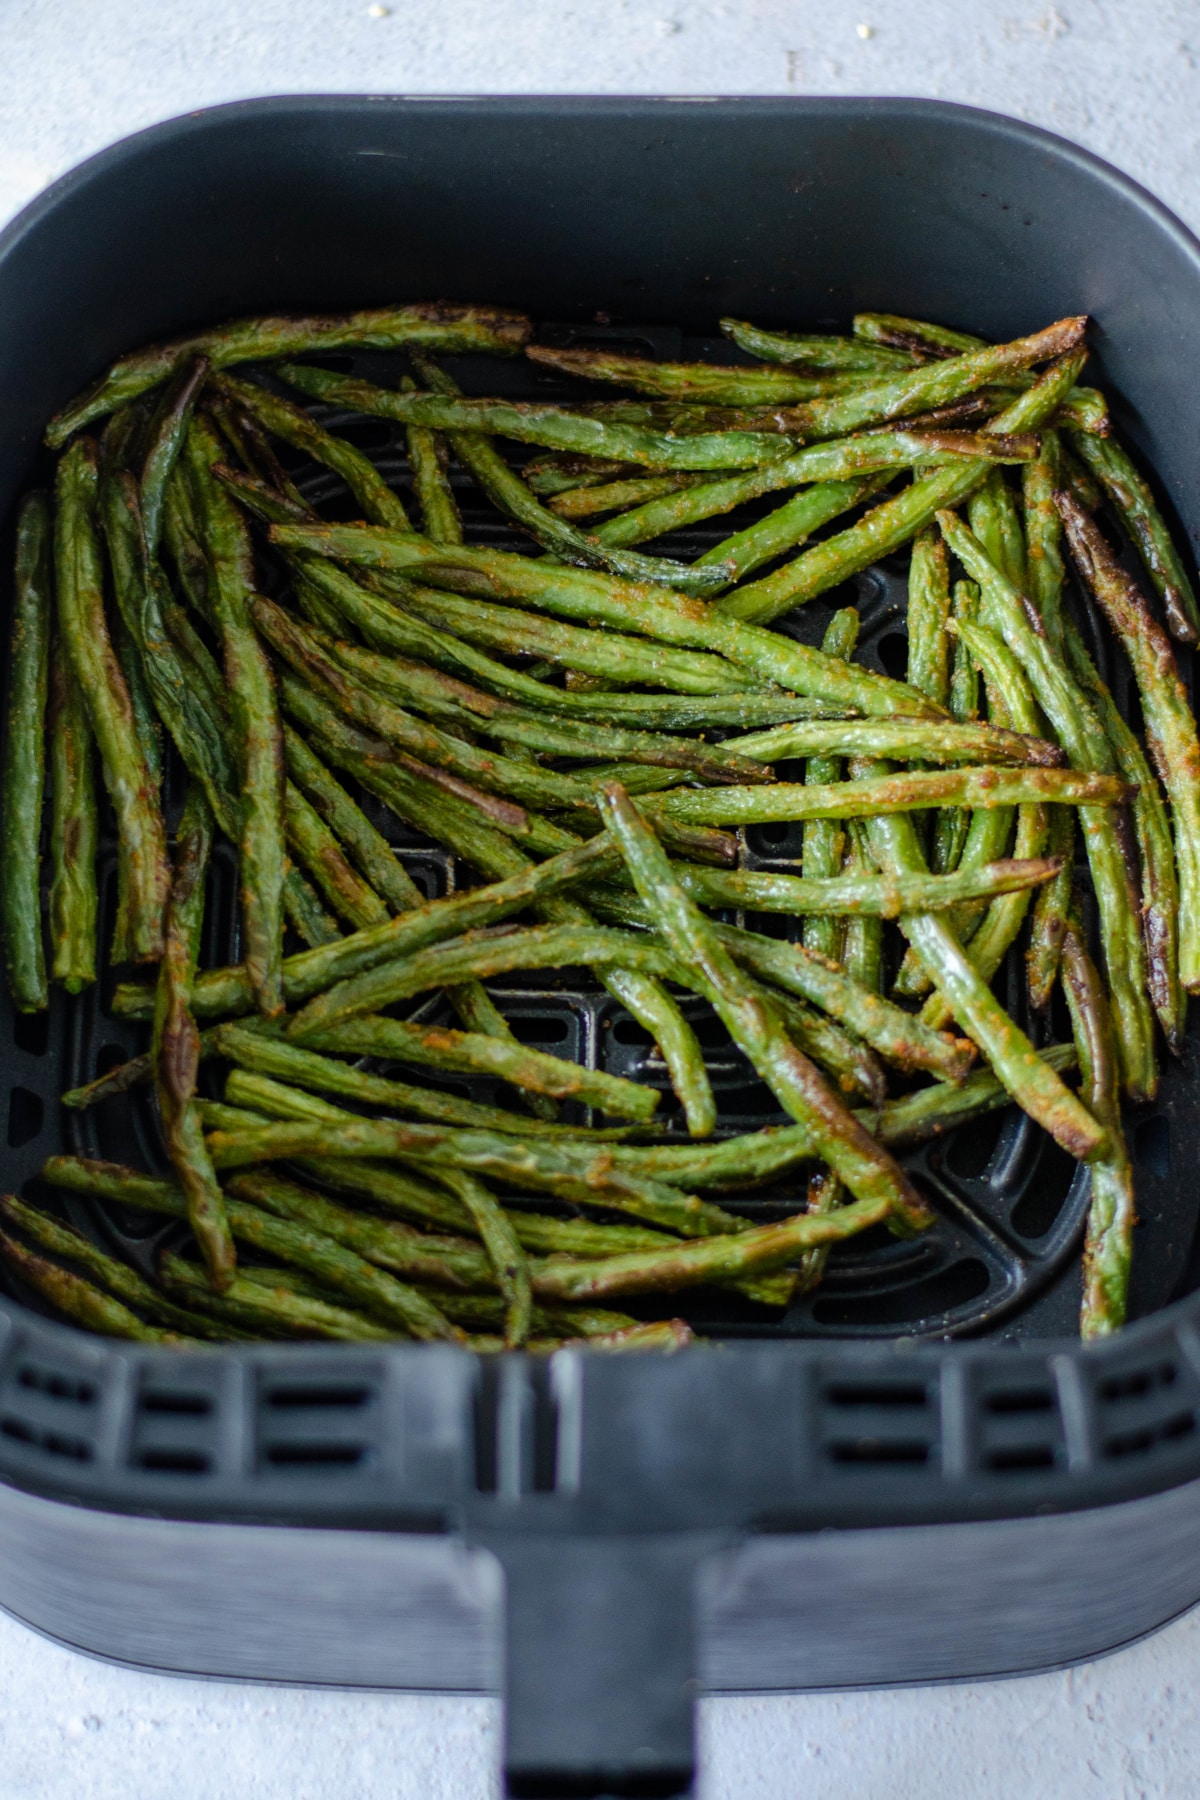 roasted green beans in the air fryer basket